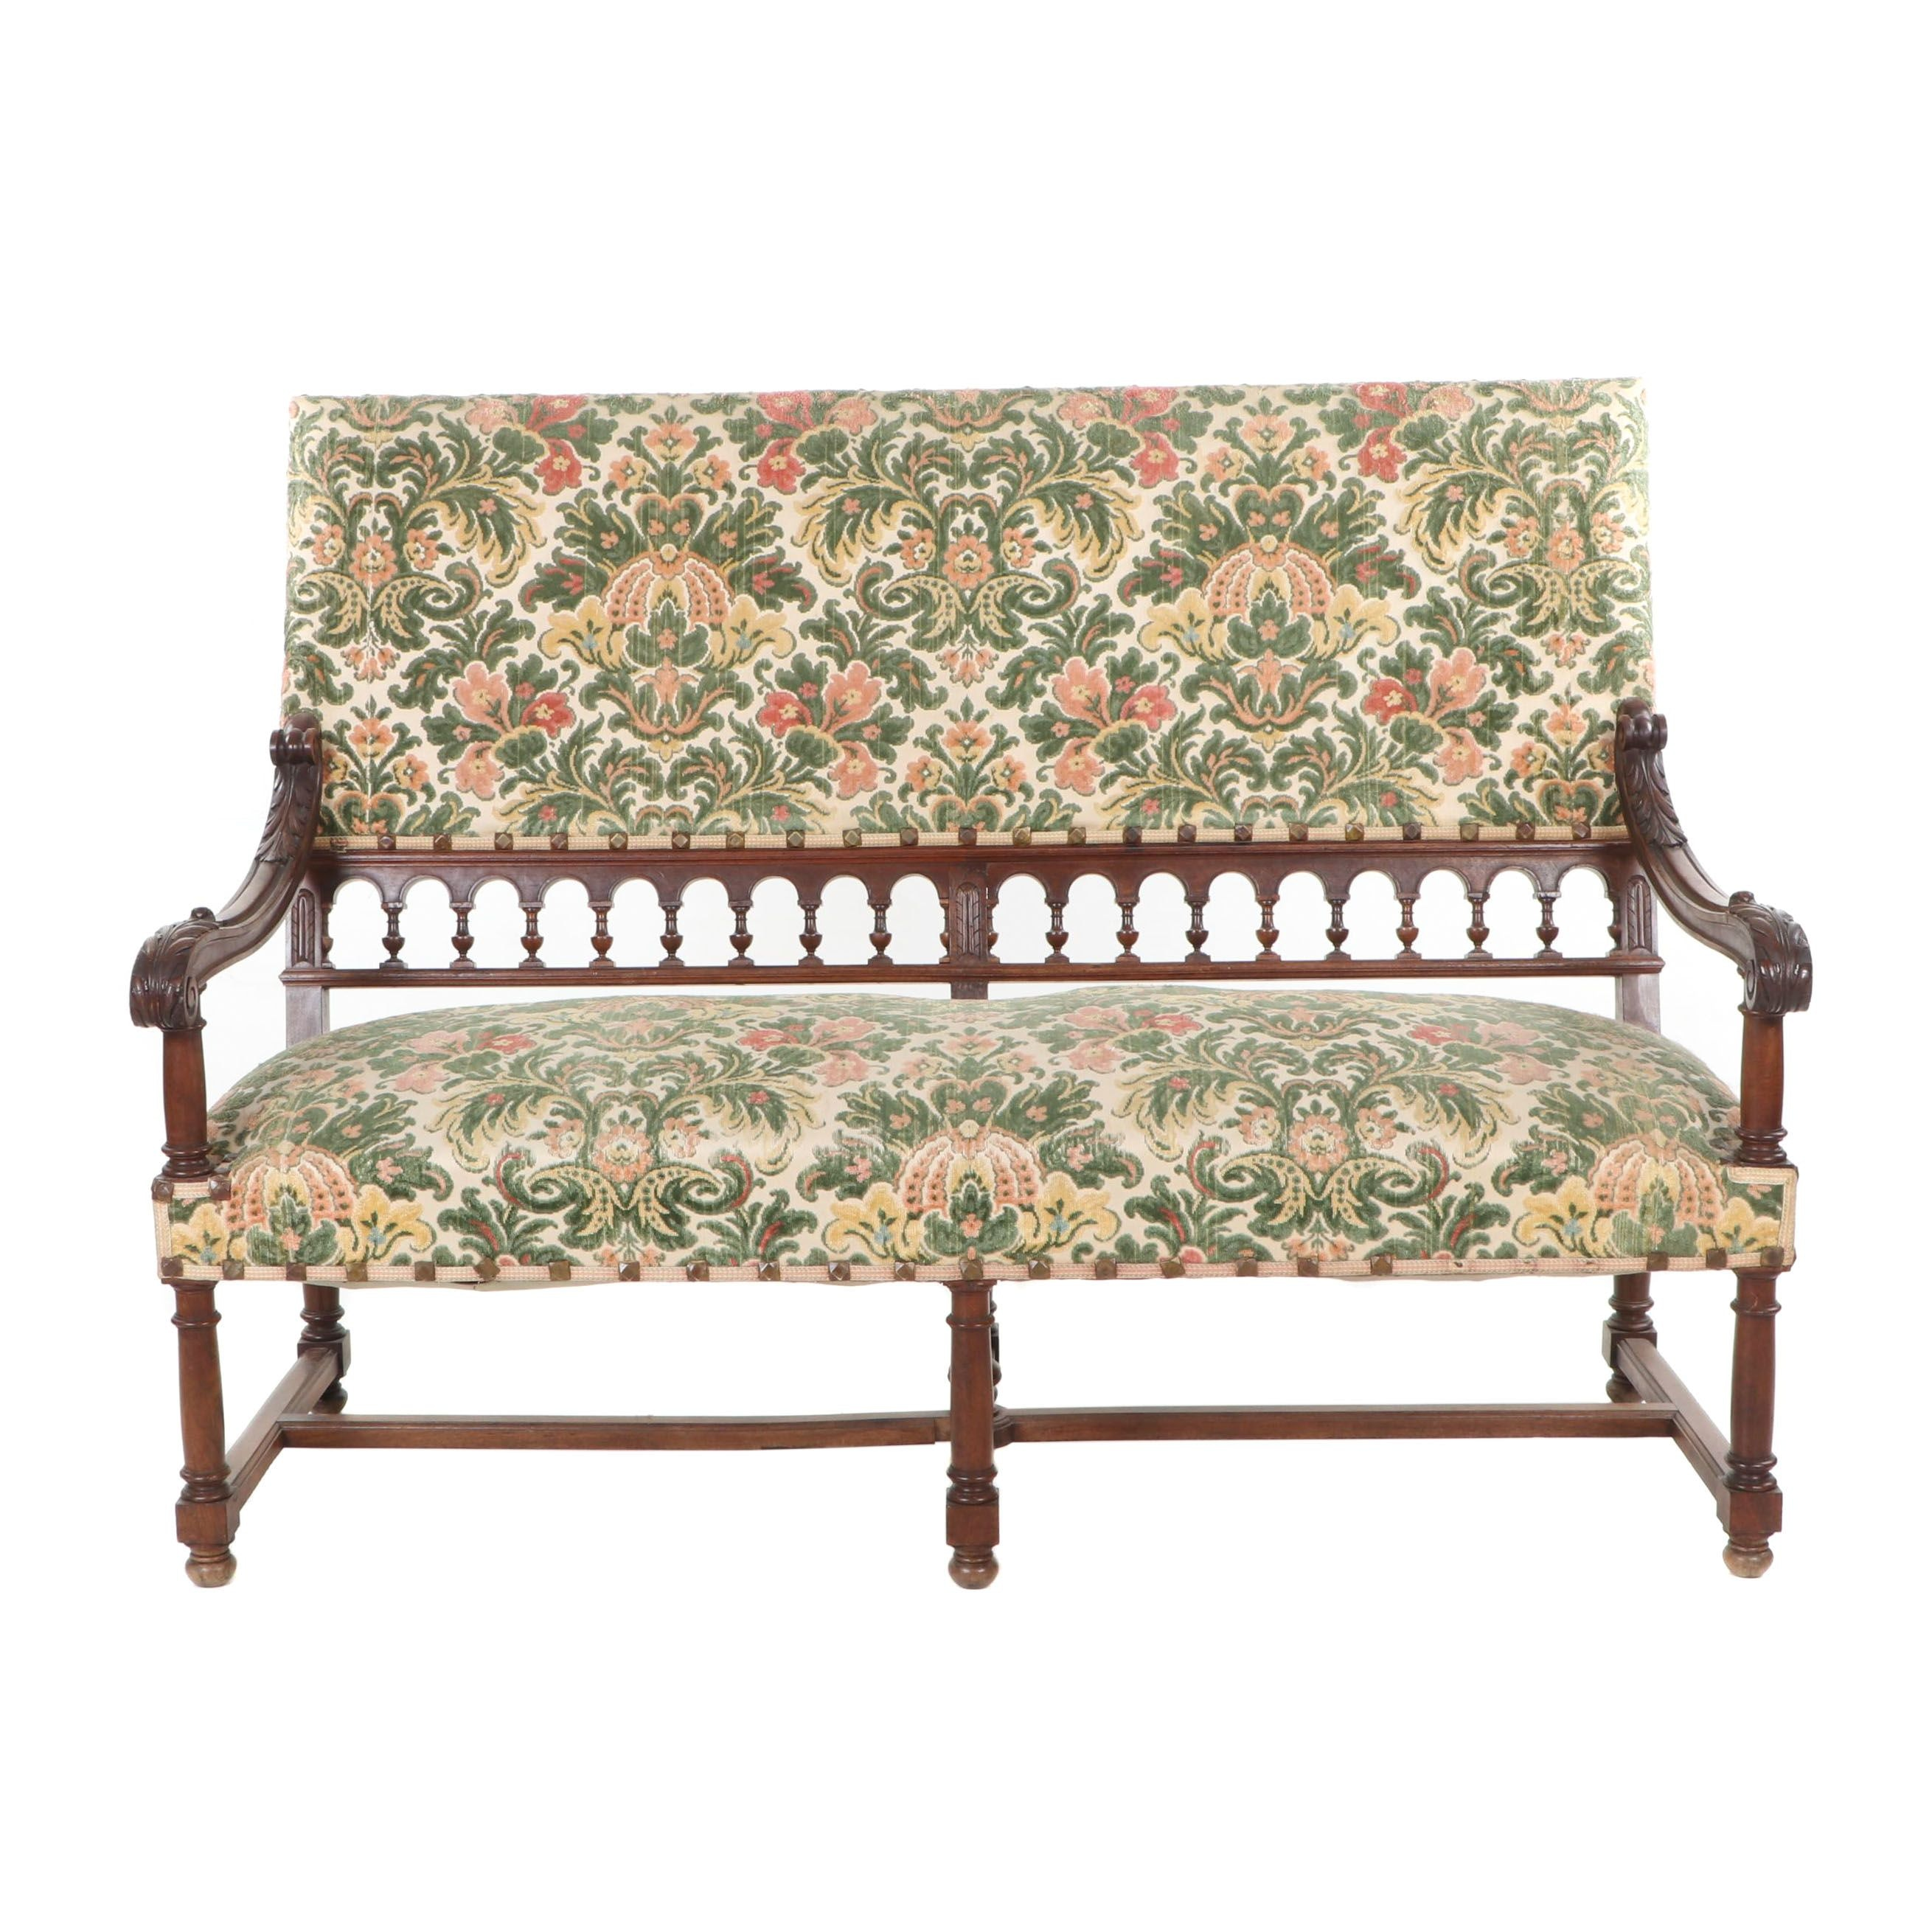 Mahogany Upholstered High-Back Settee, Mid to Late 19th Century